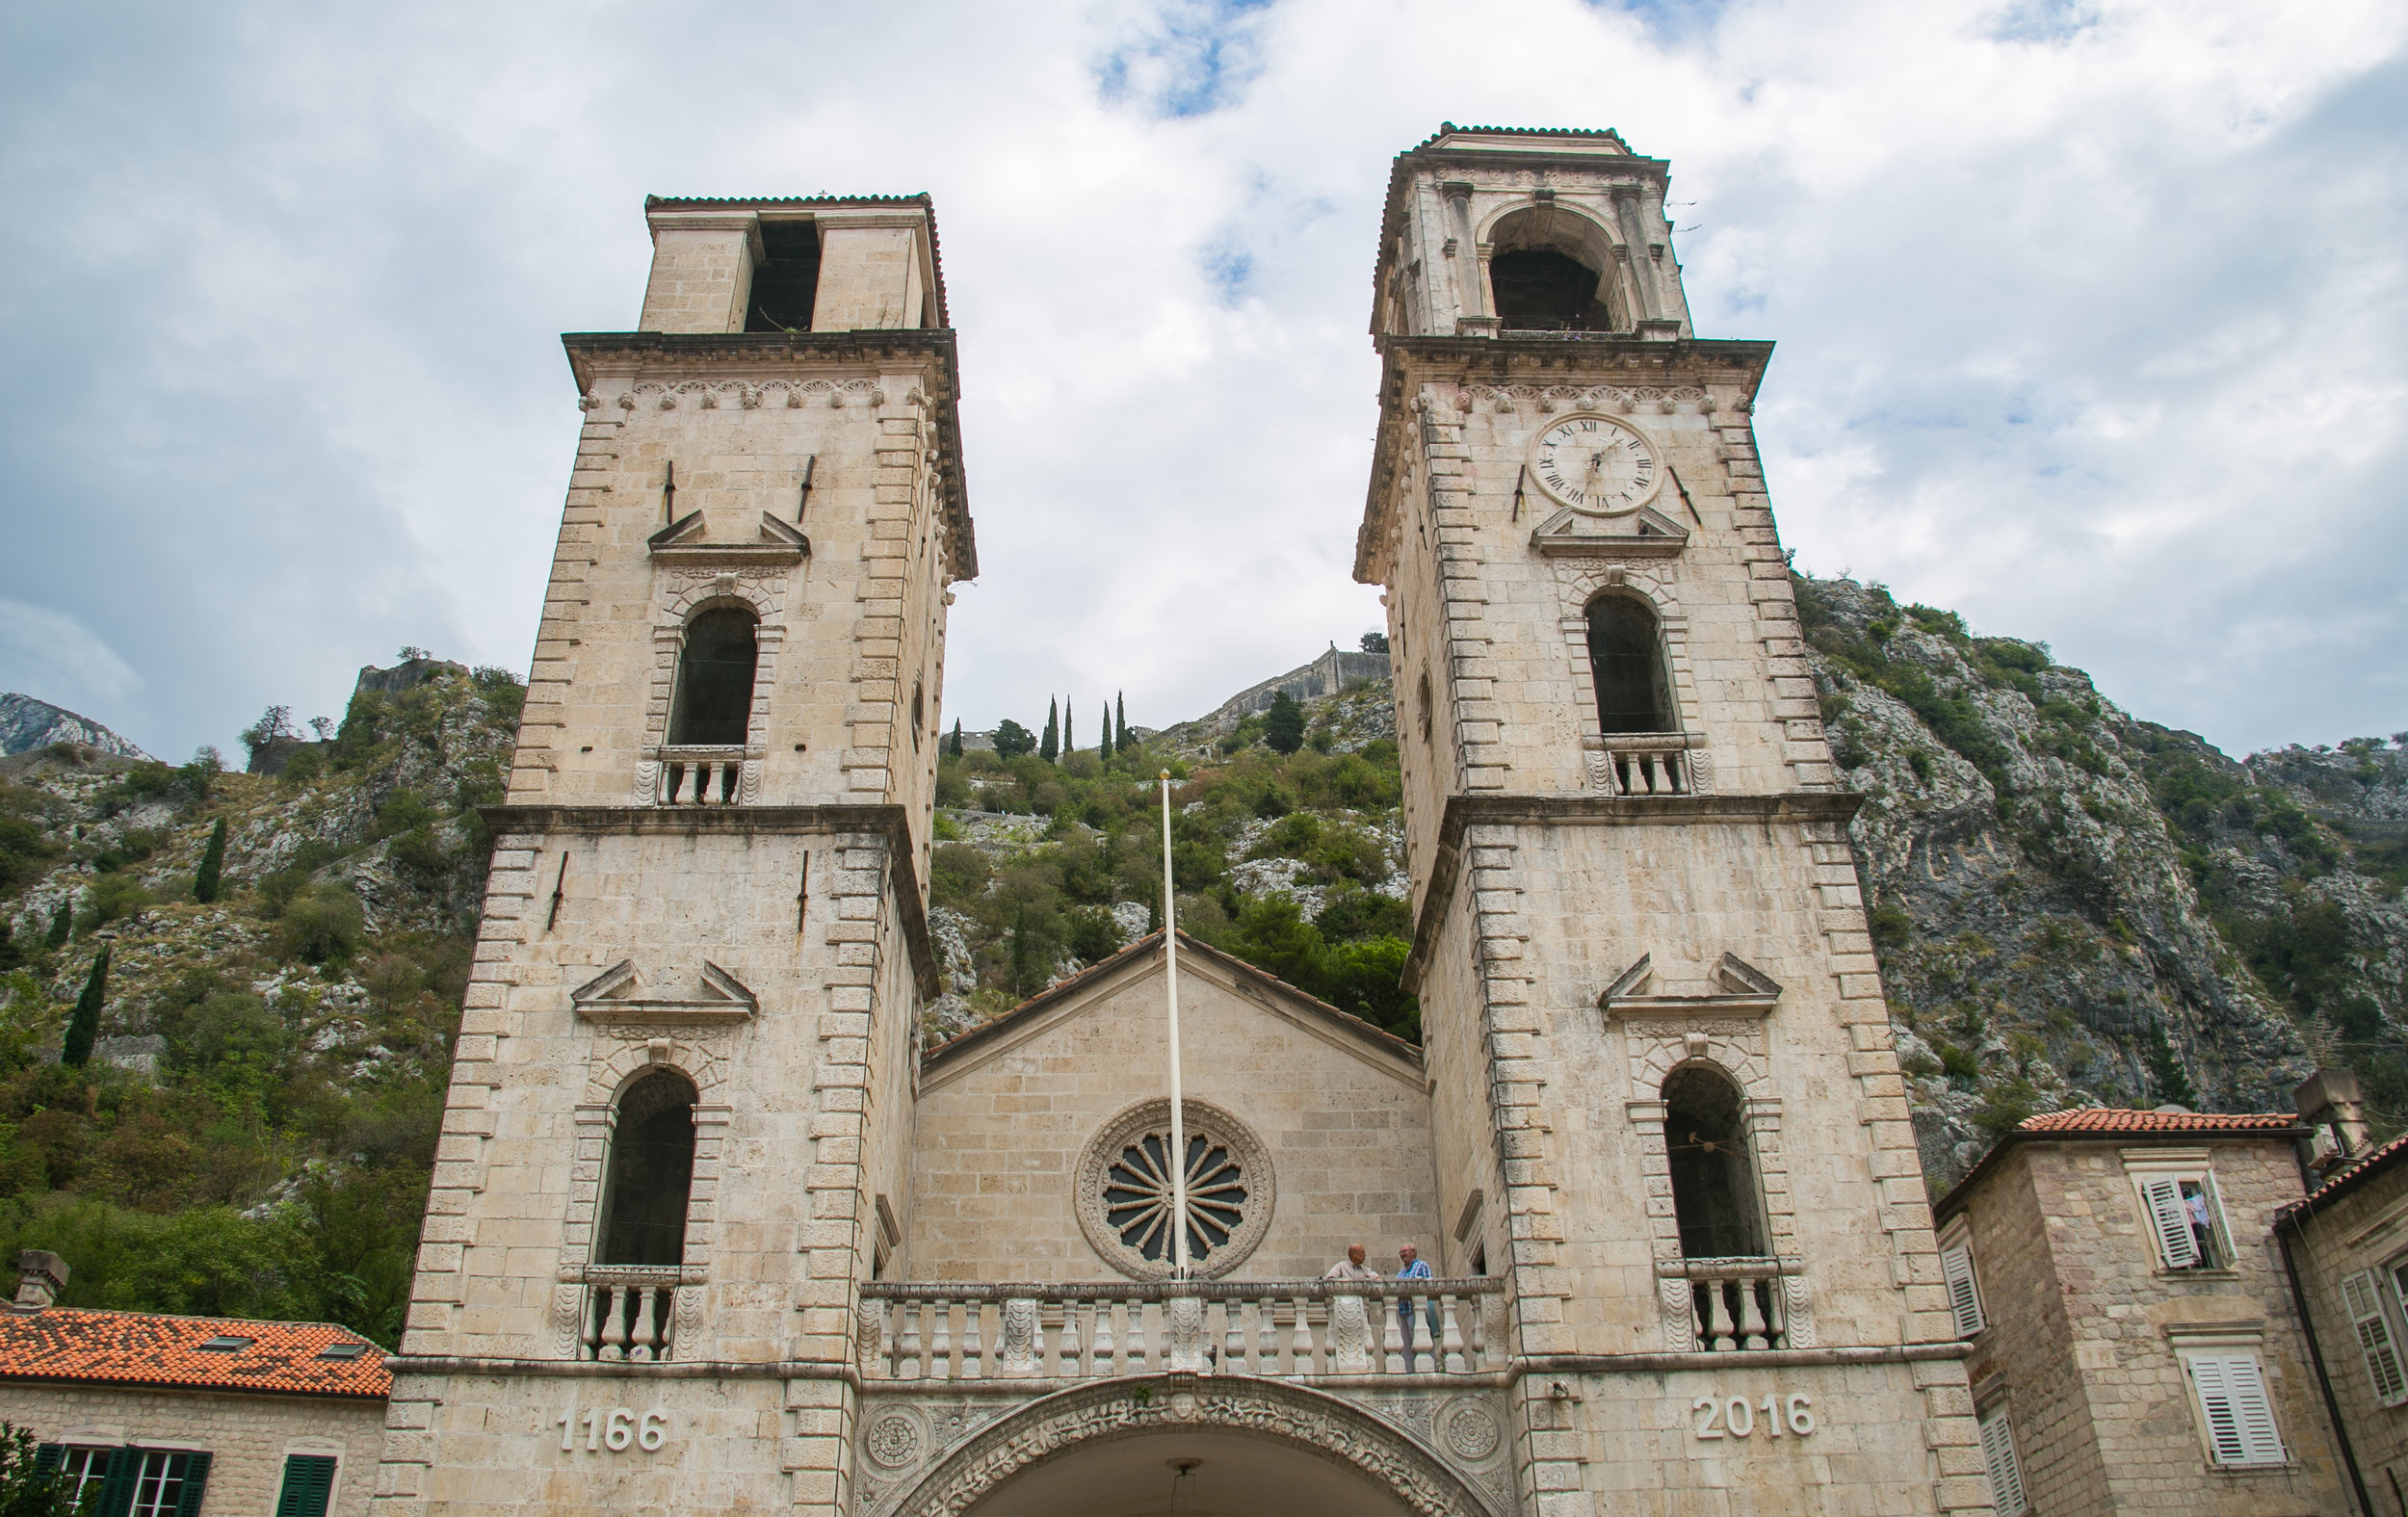 A beautiful church in the center of Old Town in Kotor, Montenegro.